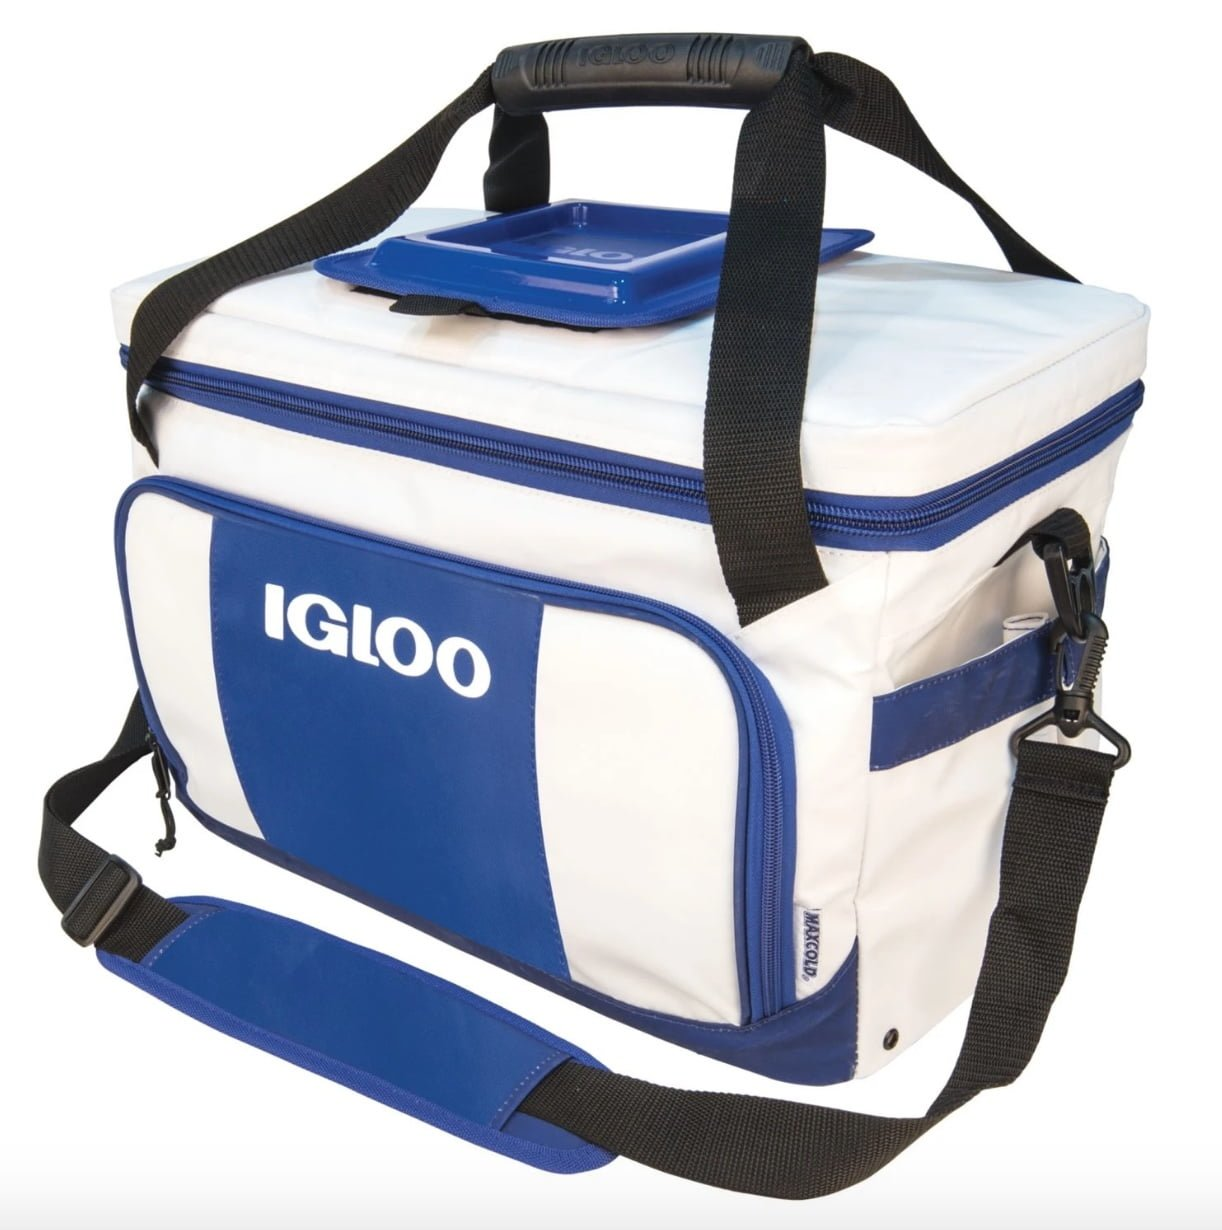 igloo marine soft cooler